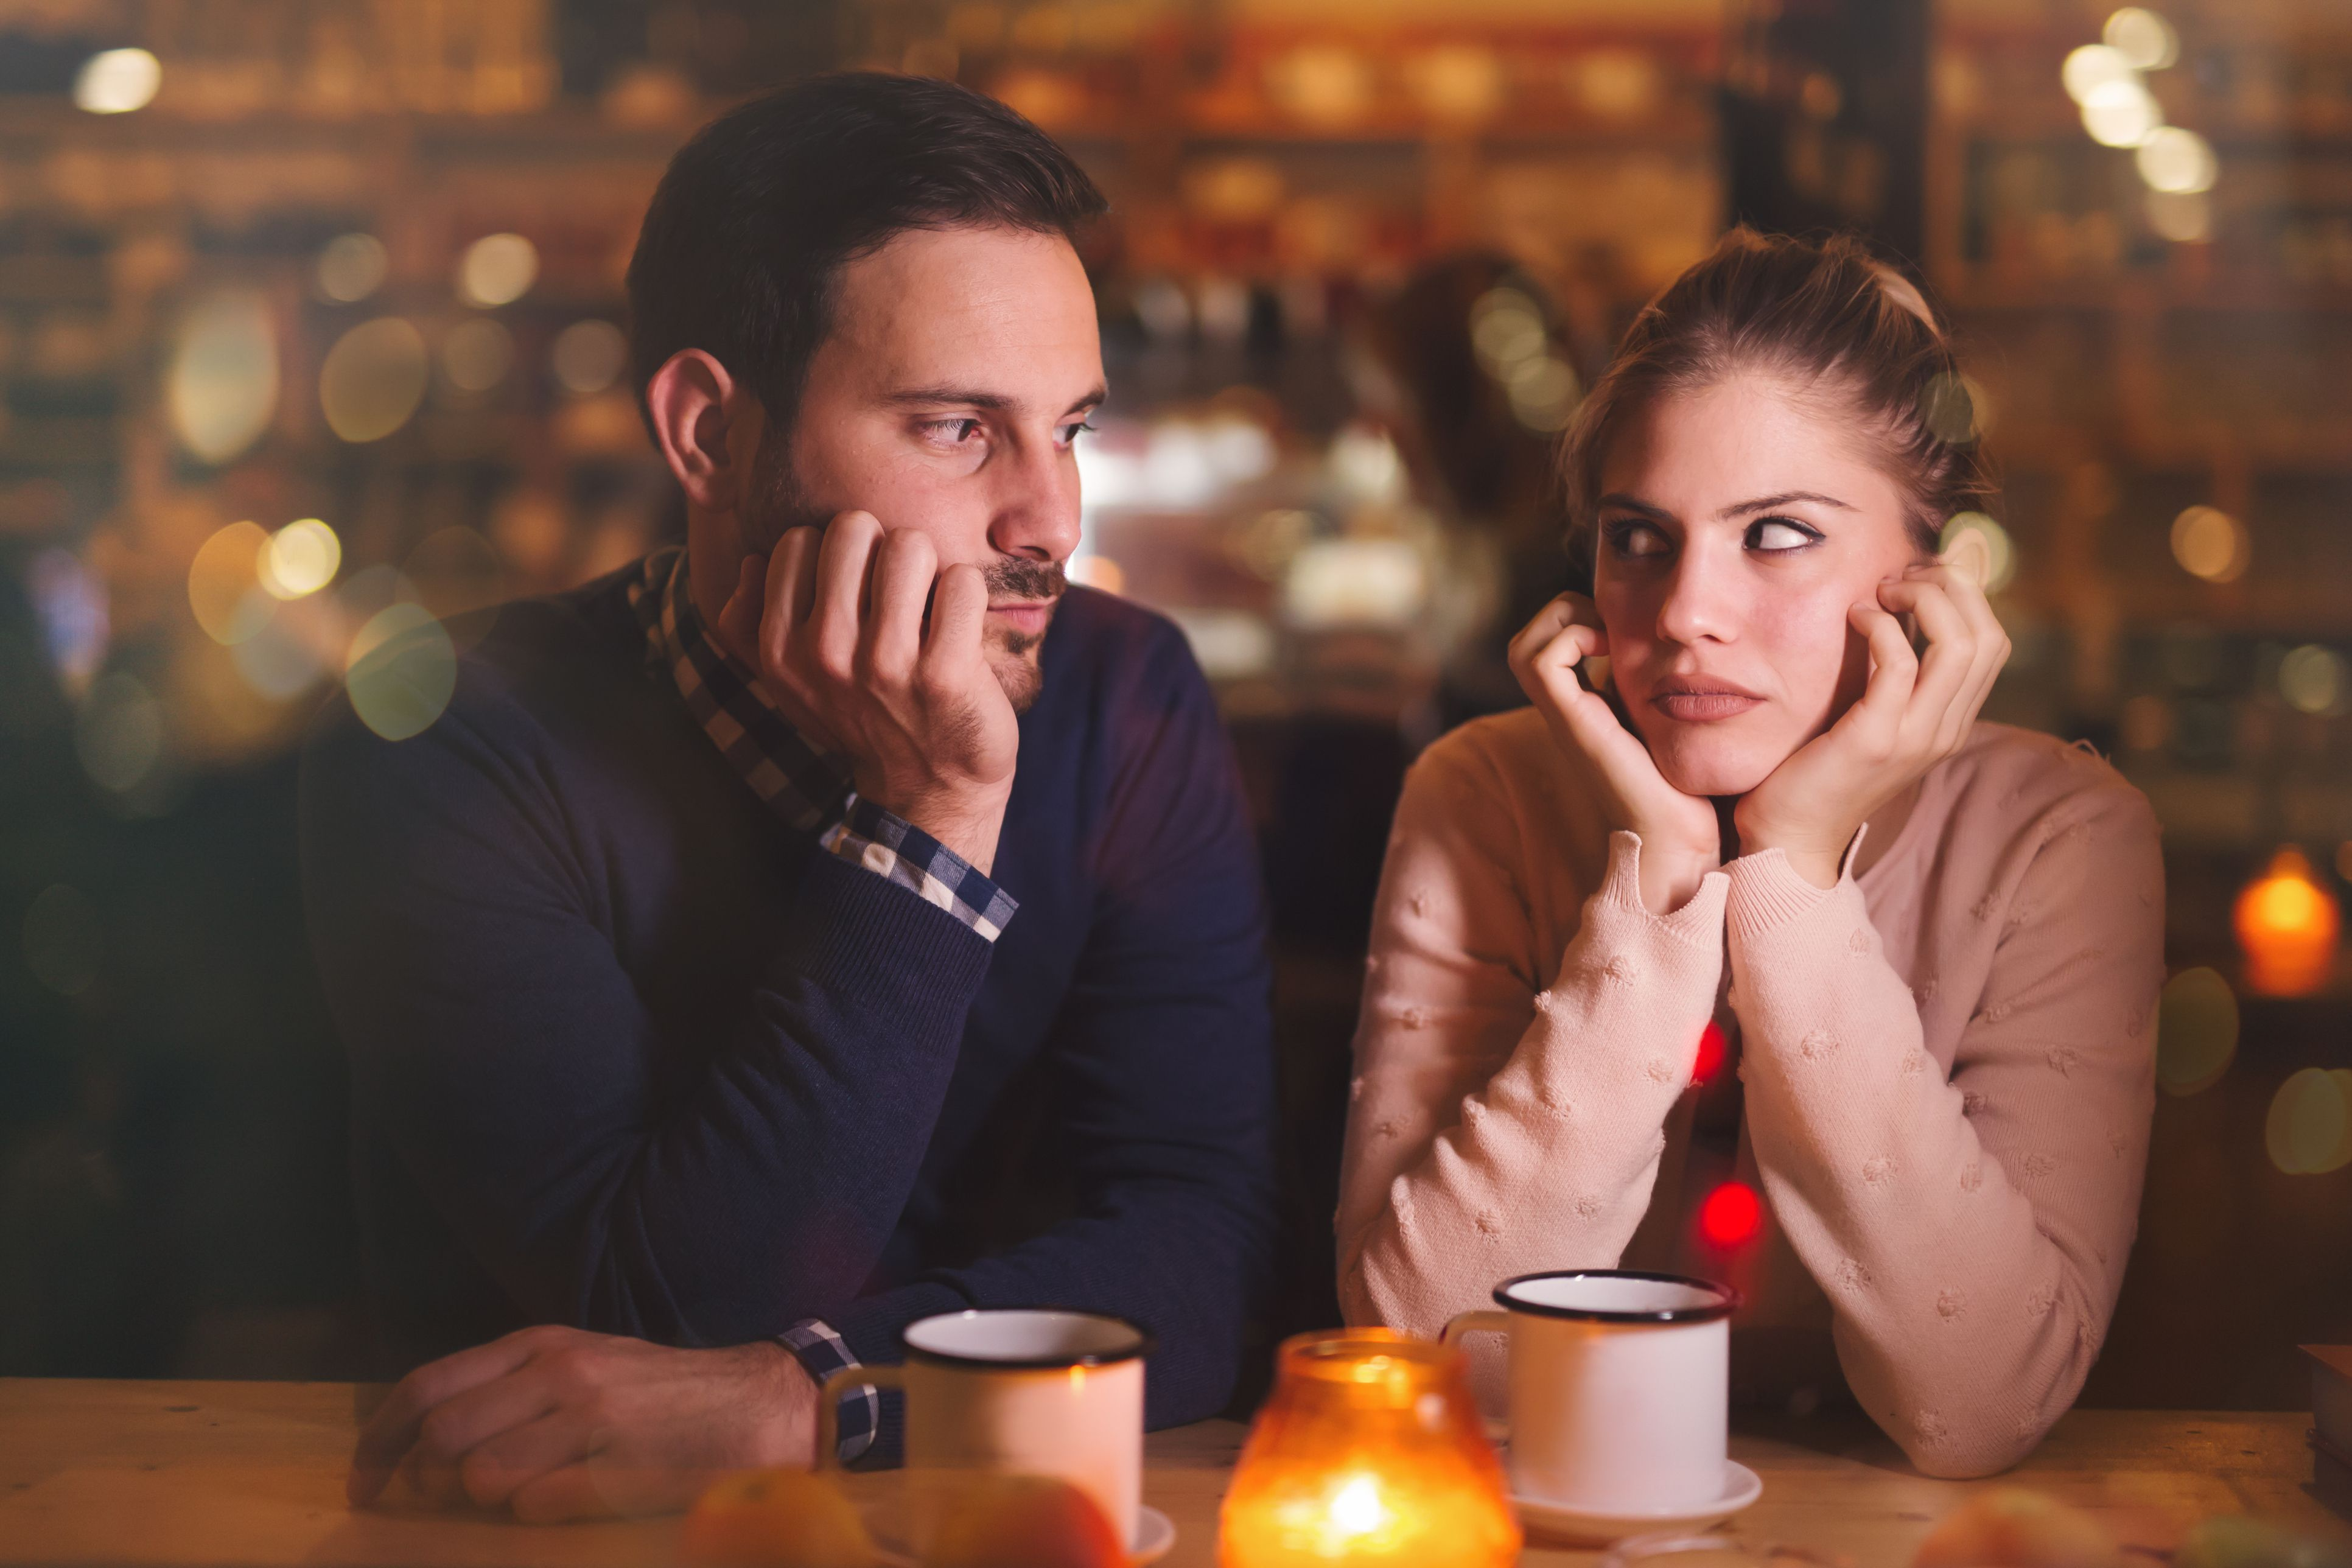 dating tips for girls on first date 2018 dates